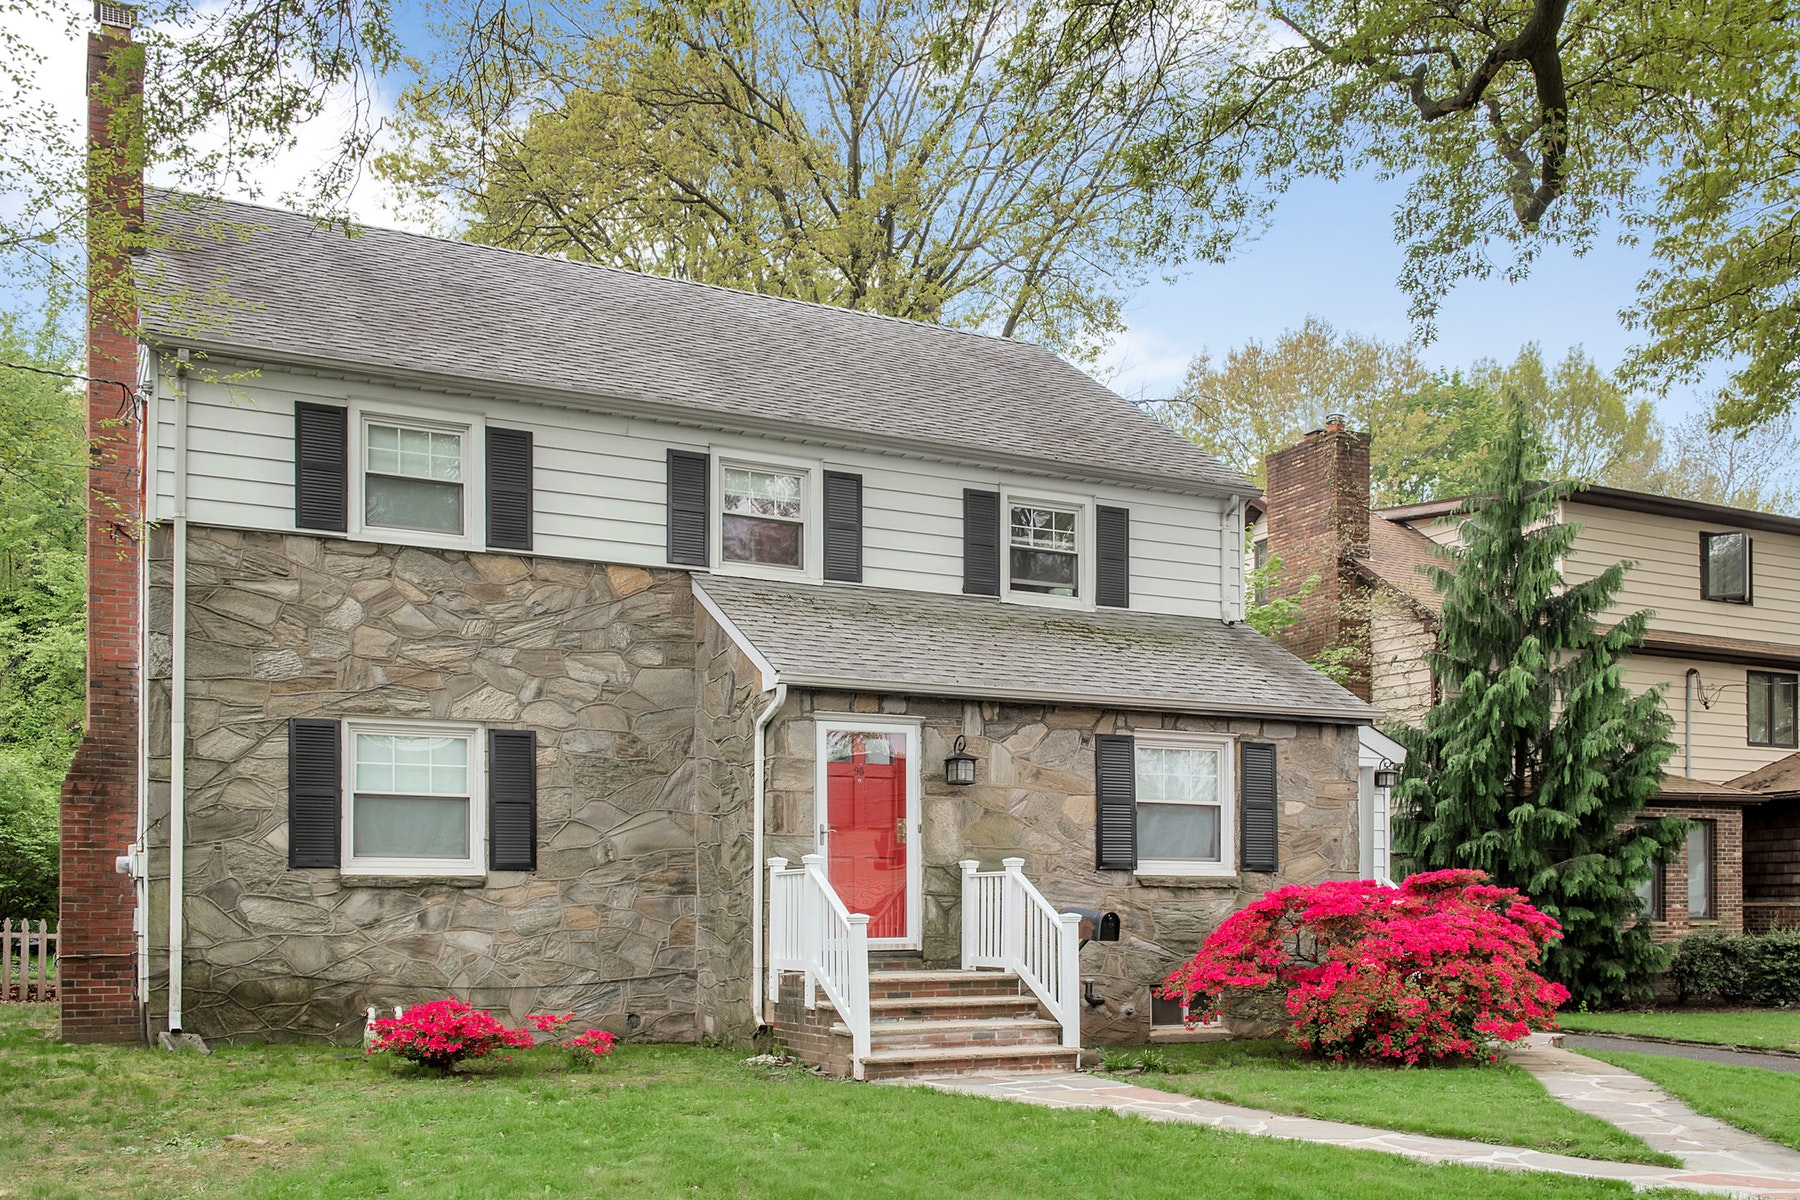 Property for Sale at Spacious Oakview Colonial 95 W Passaic Avenue, Bloomfield, New Jersey 07003 United States